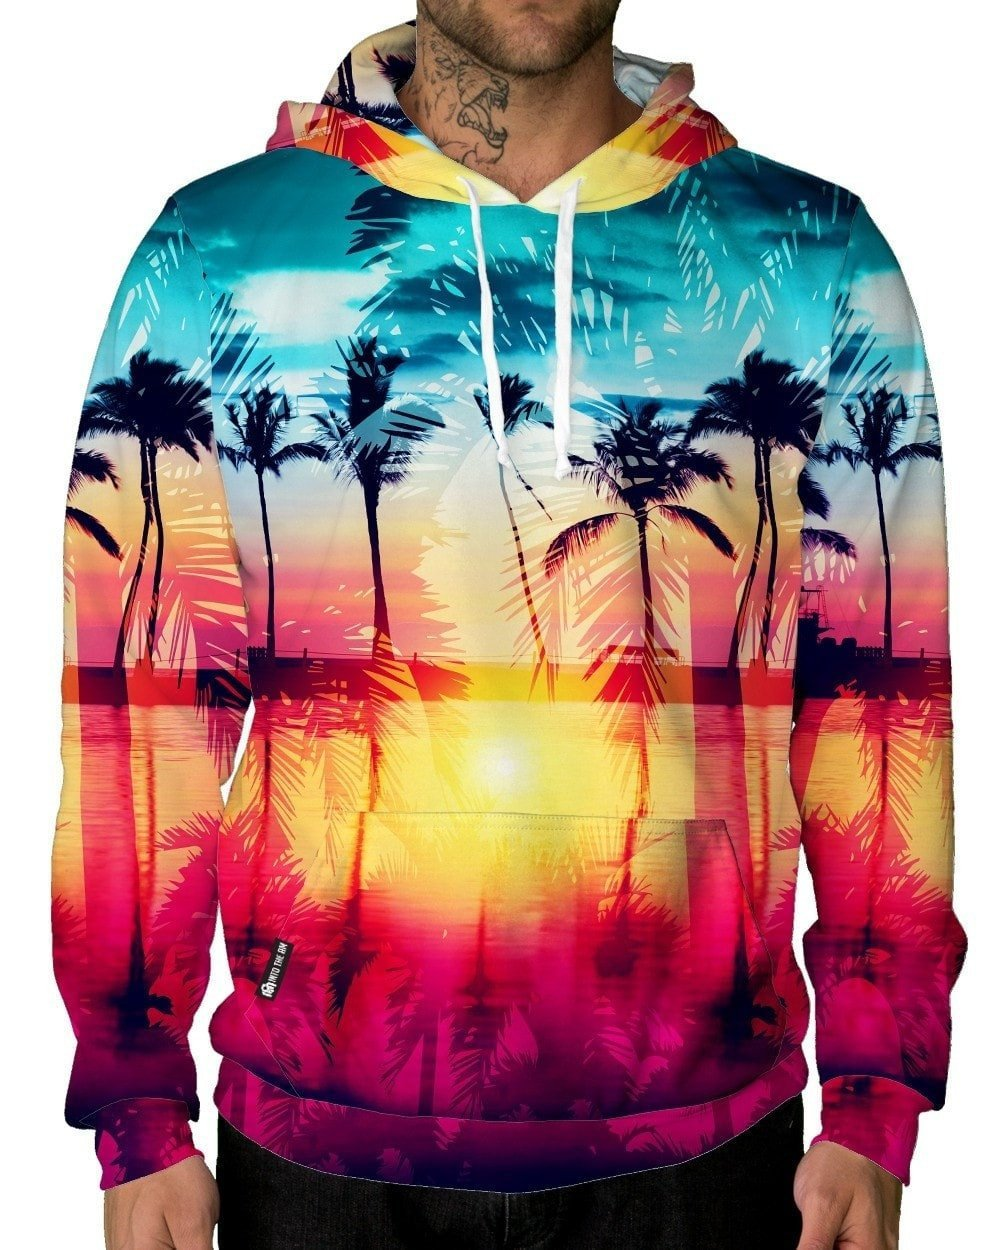 Coastal Dreams Unisex Hoodie-men's front